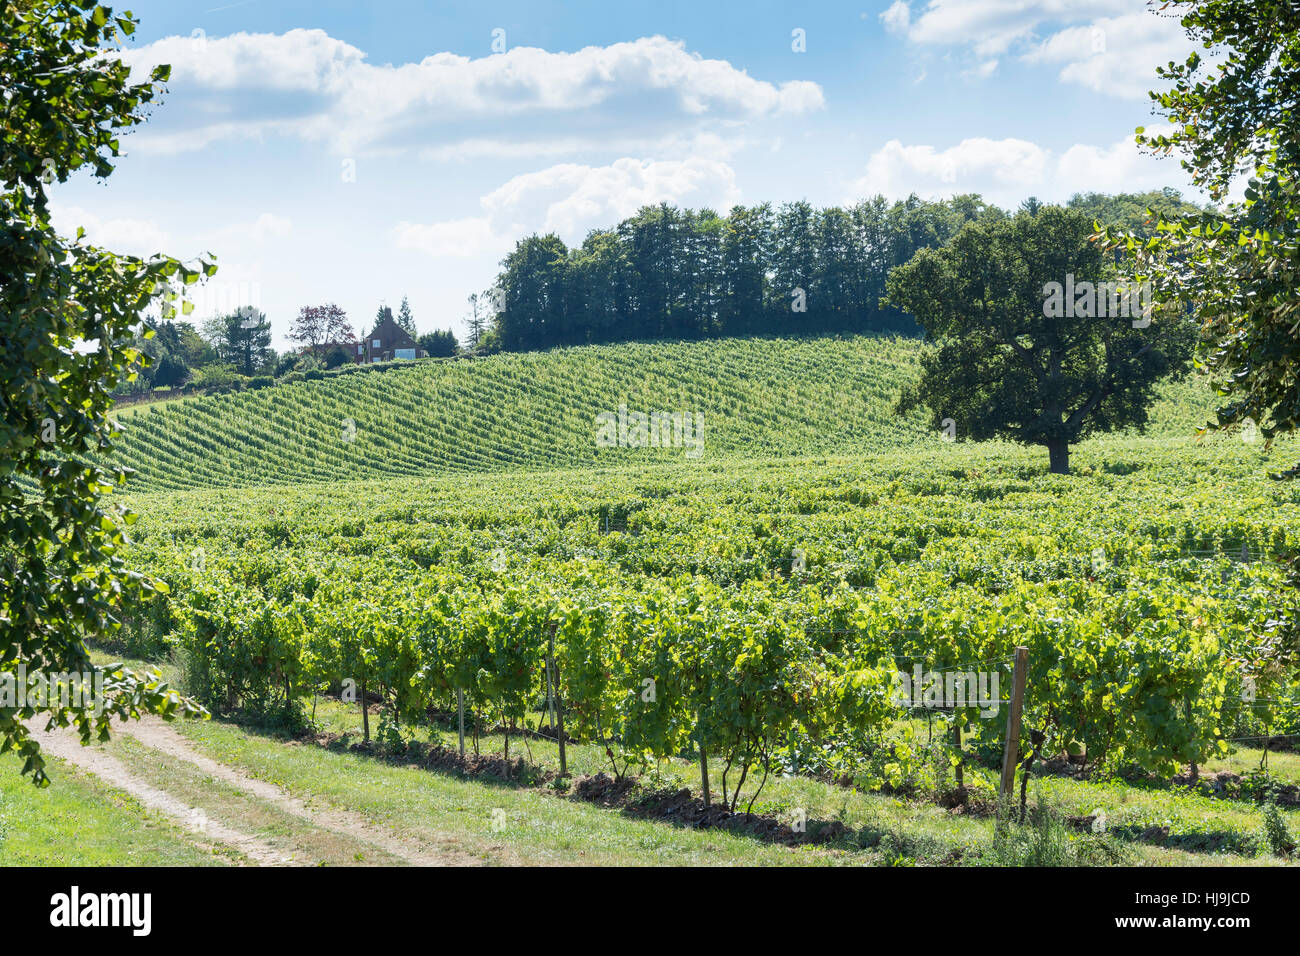 Grape vines at Denbies Wine Estate, London Road, Dorking, Surrey, England, United Kingdom - Stock Image